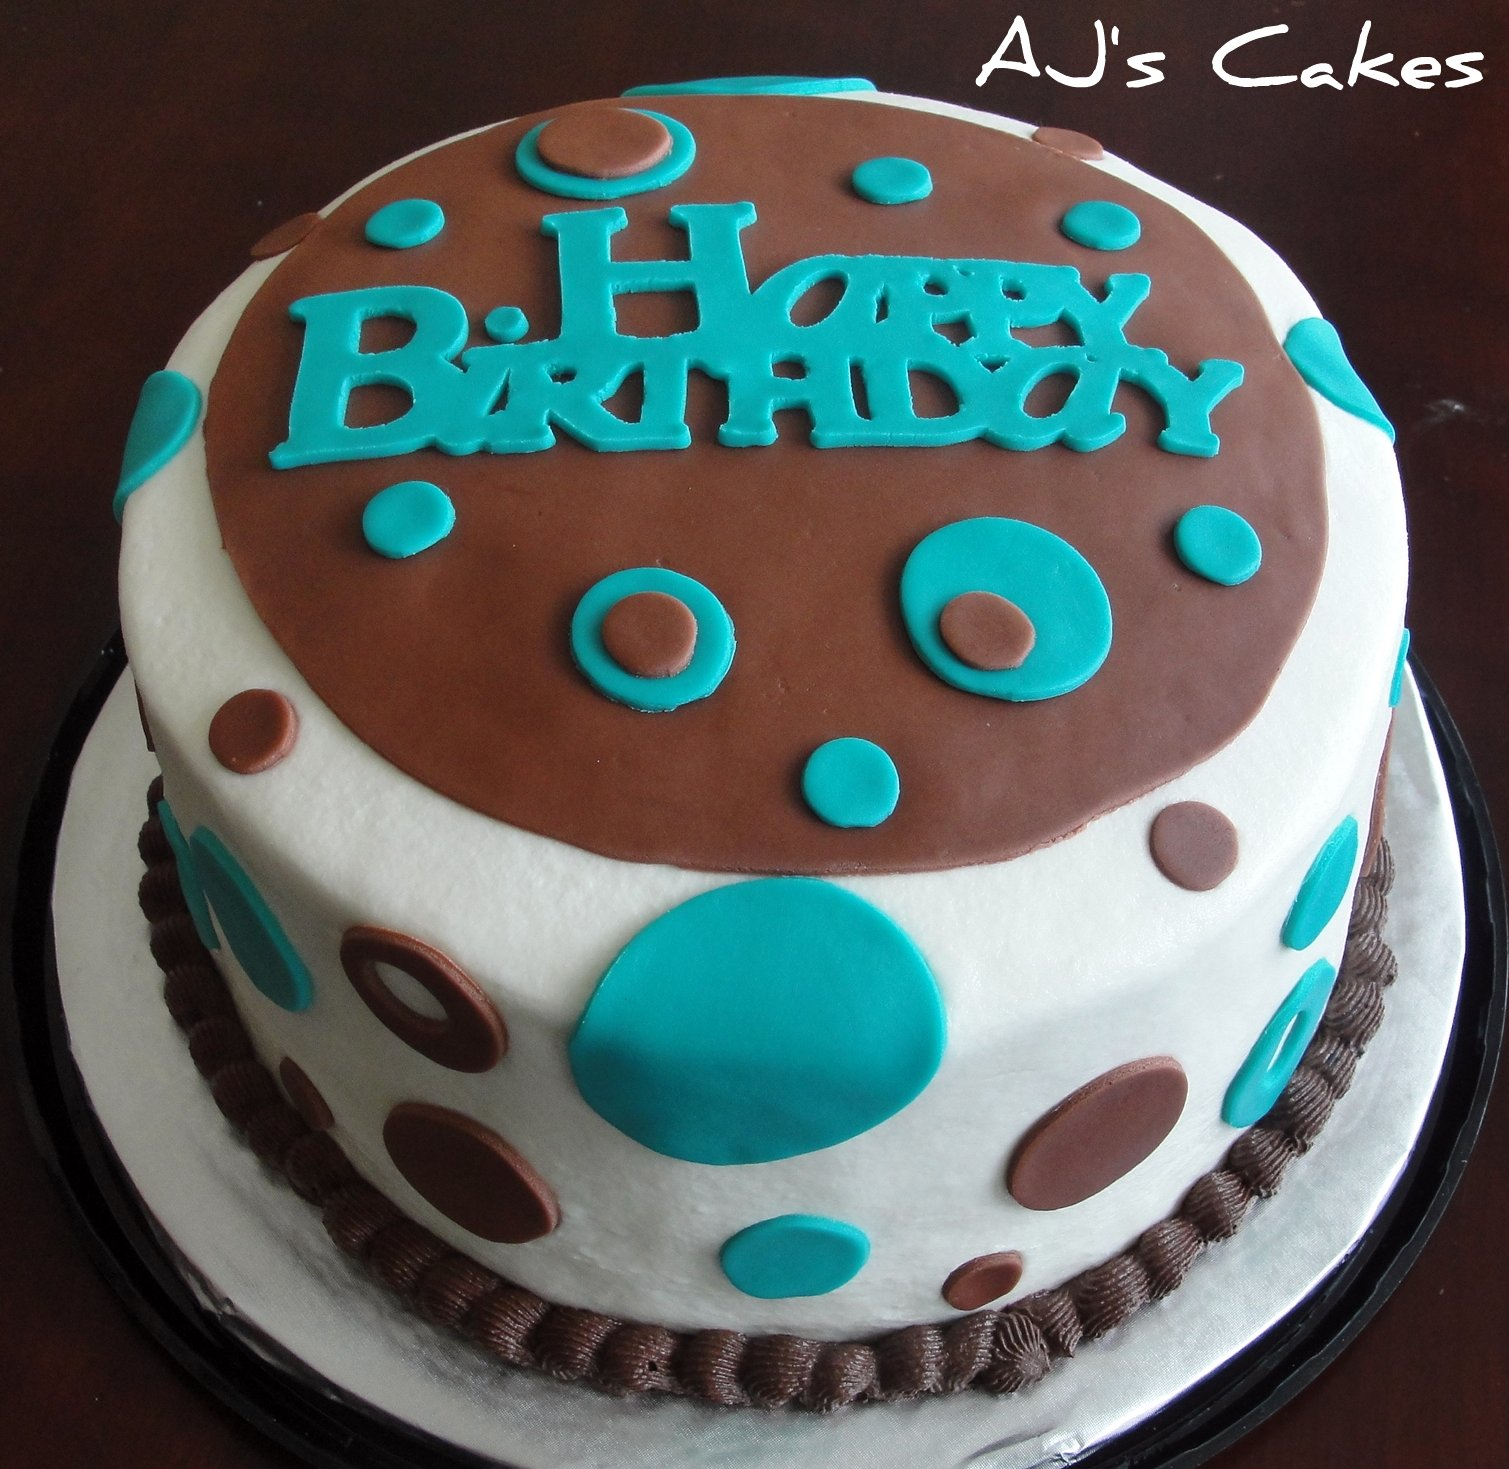 Birthday Cake For Him Images : AJ s Cakes: Teal and Brown Birthday Cake